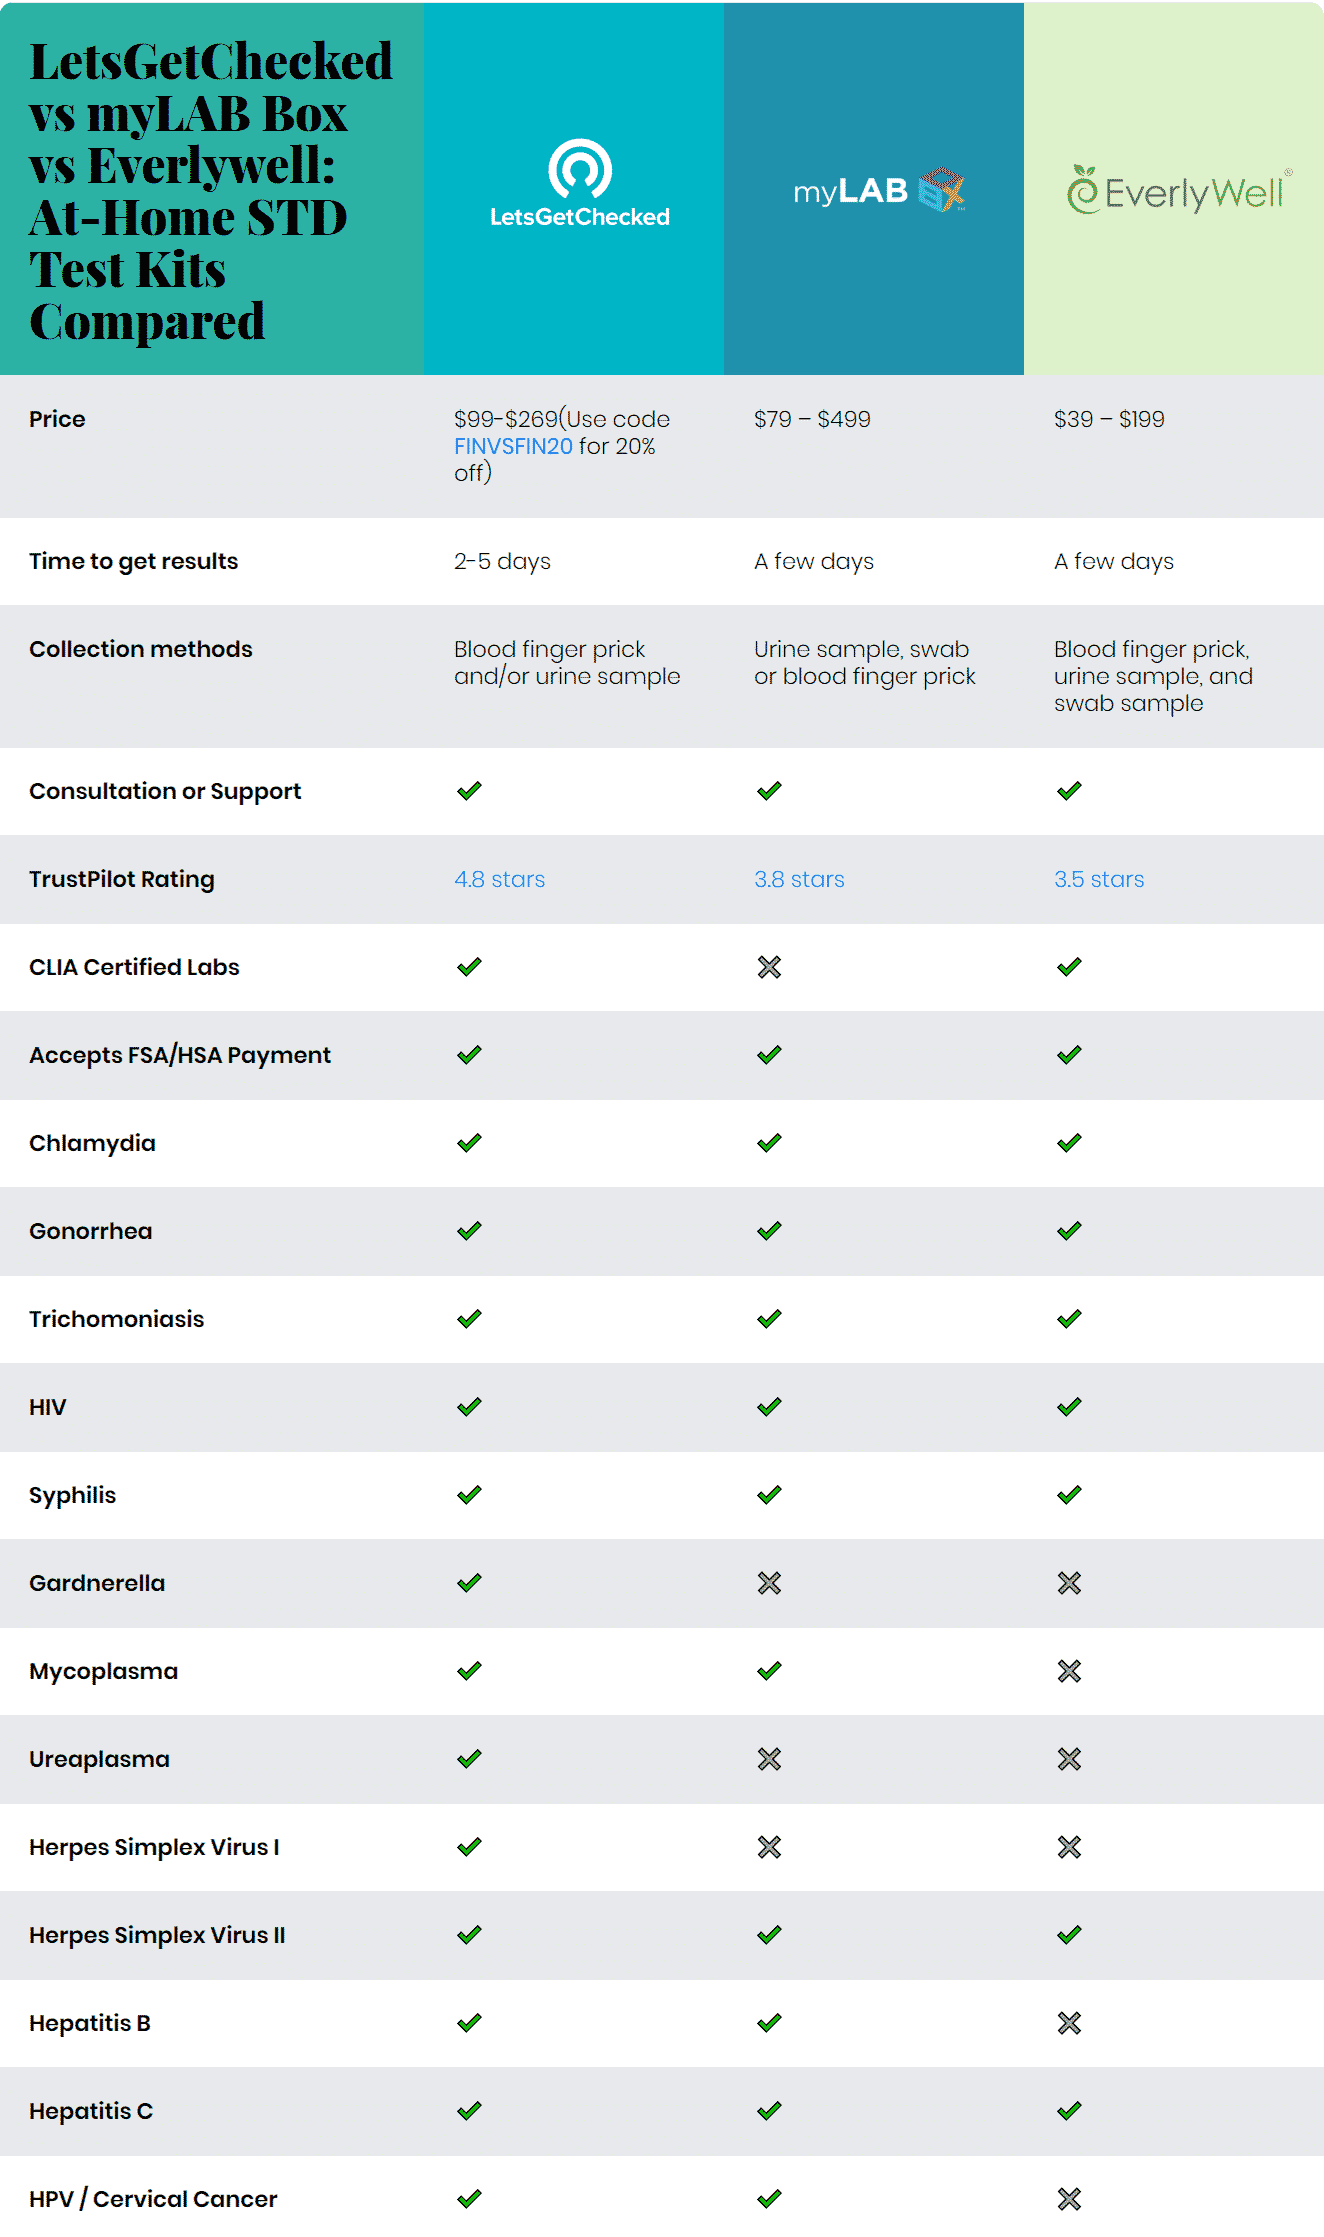 LetsGetChecked vs myLAB Box vs Everlywell: at-home STD Test Kits Compared